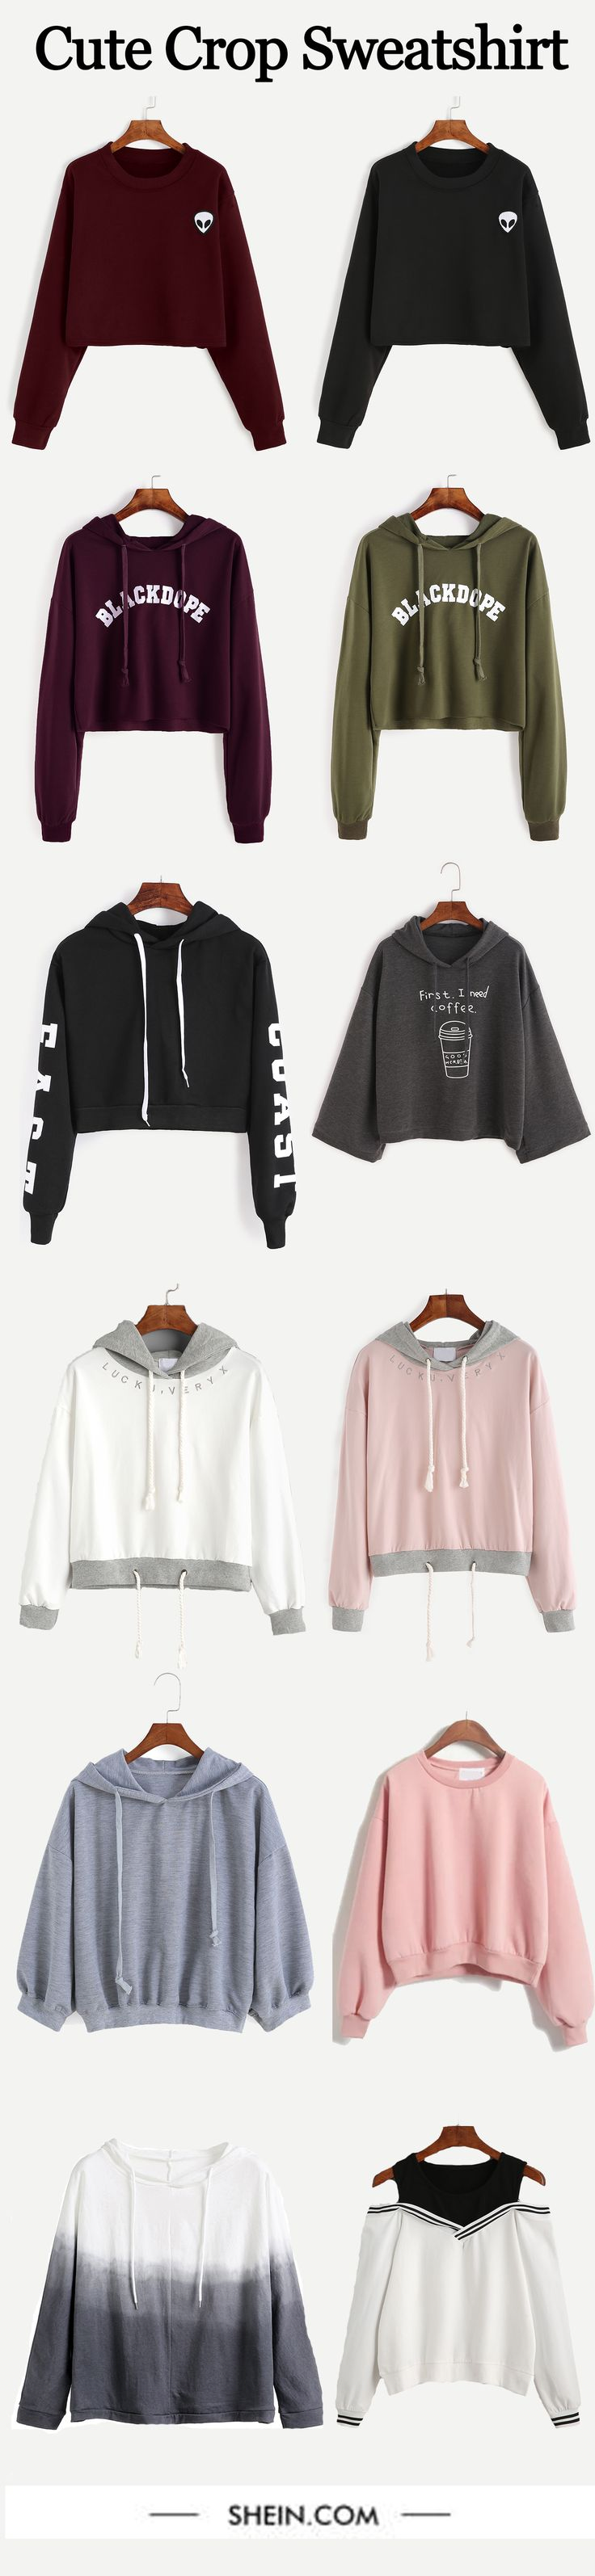 Cute crop fall/winter sweatshirt collection from shein.com. up to 80% off.